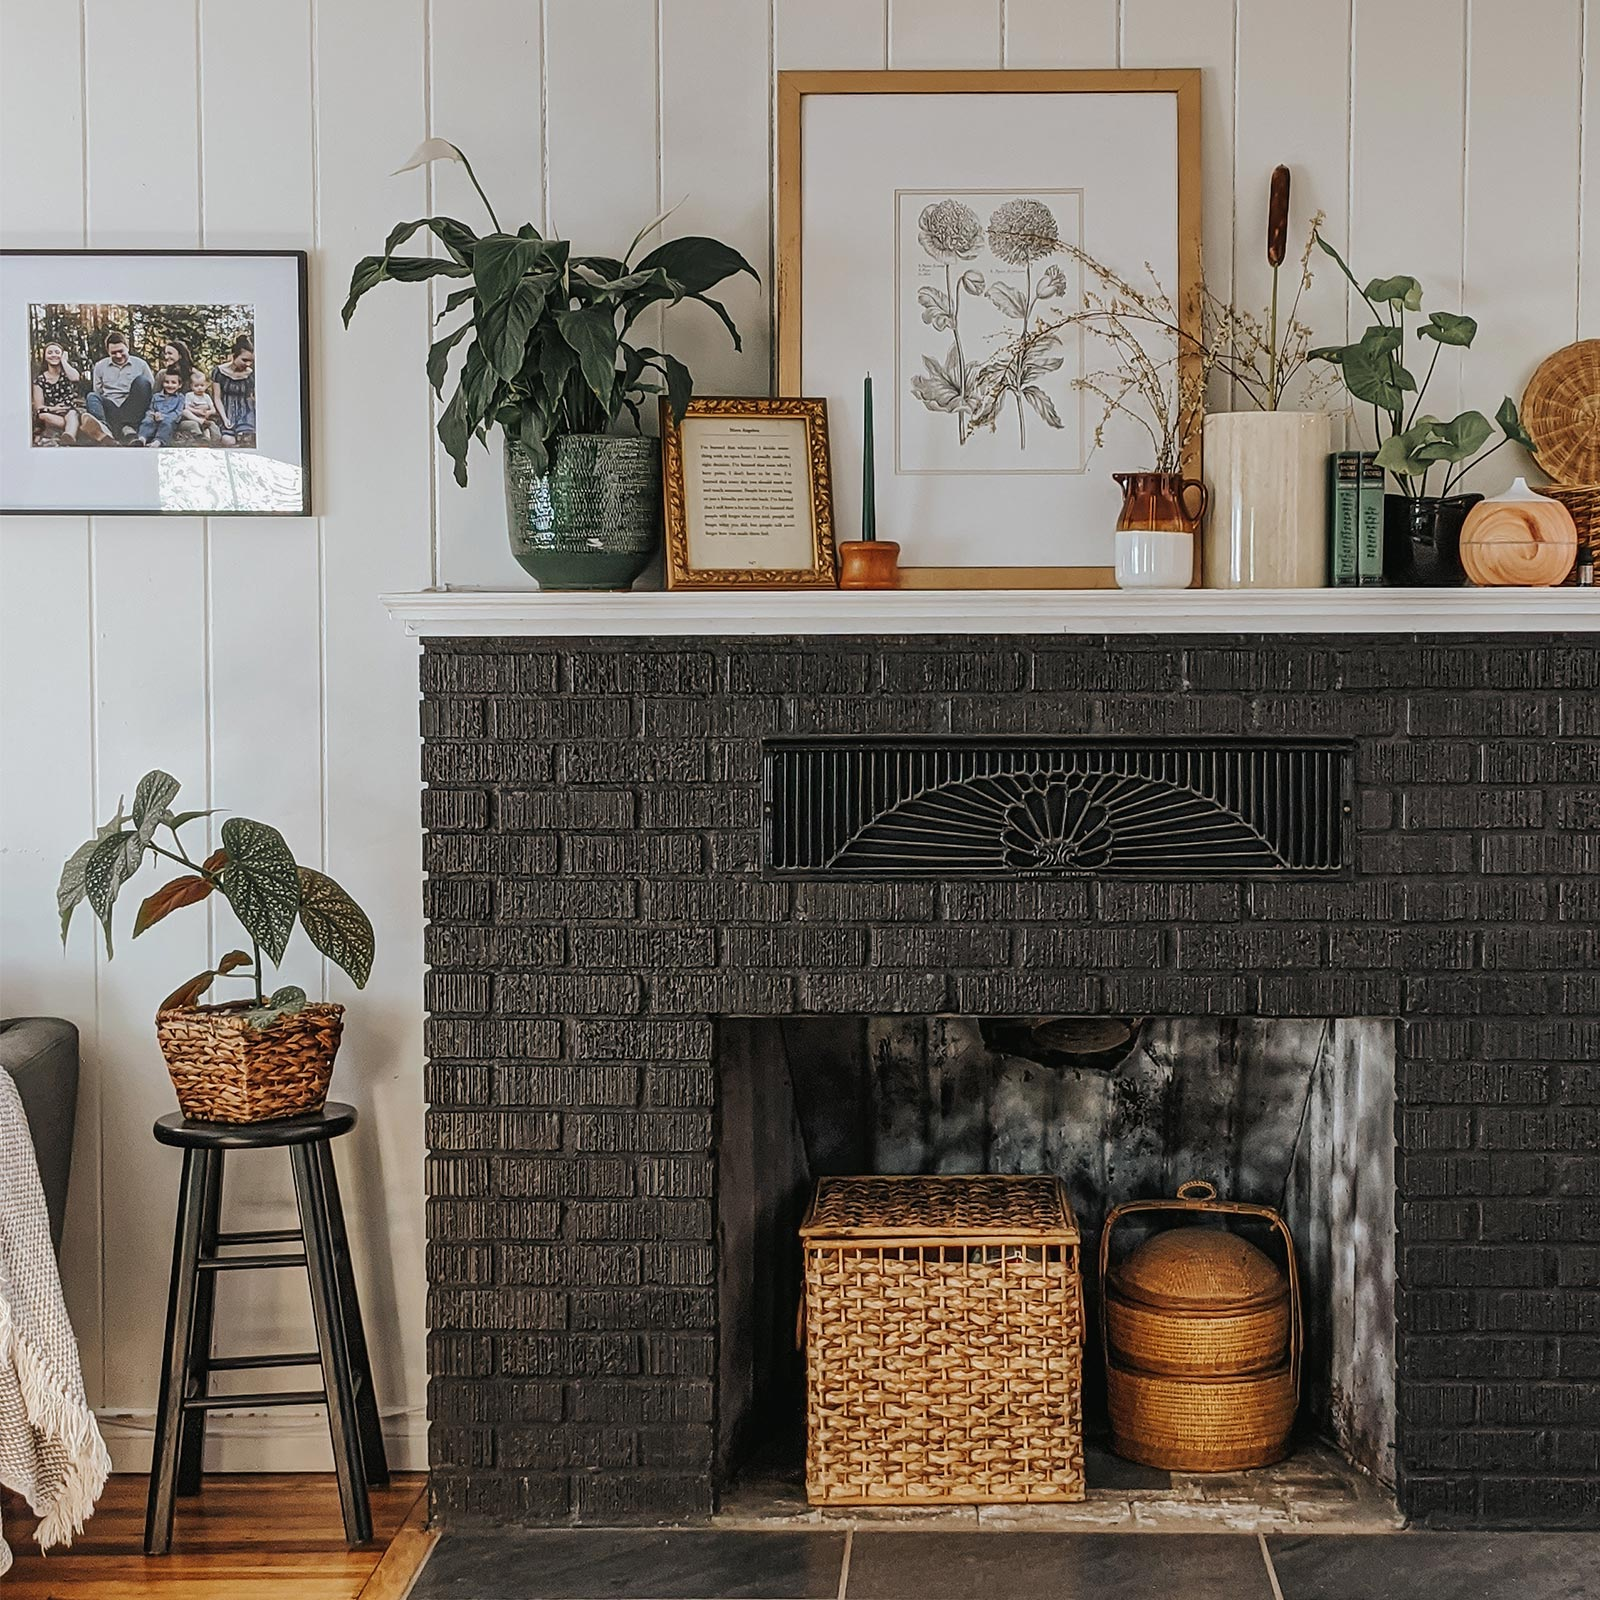 Mantel of black brick fireplace filled with frames, plants, and other ornamentals